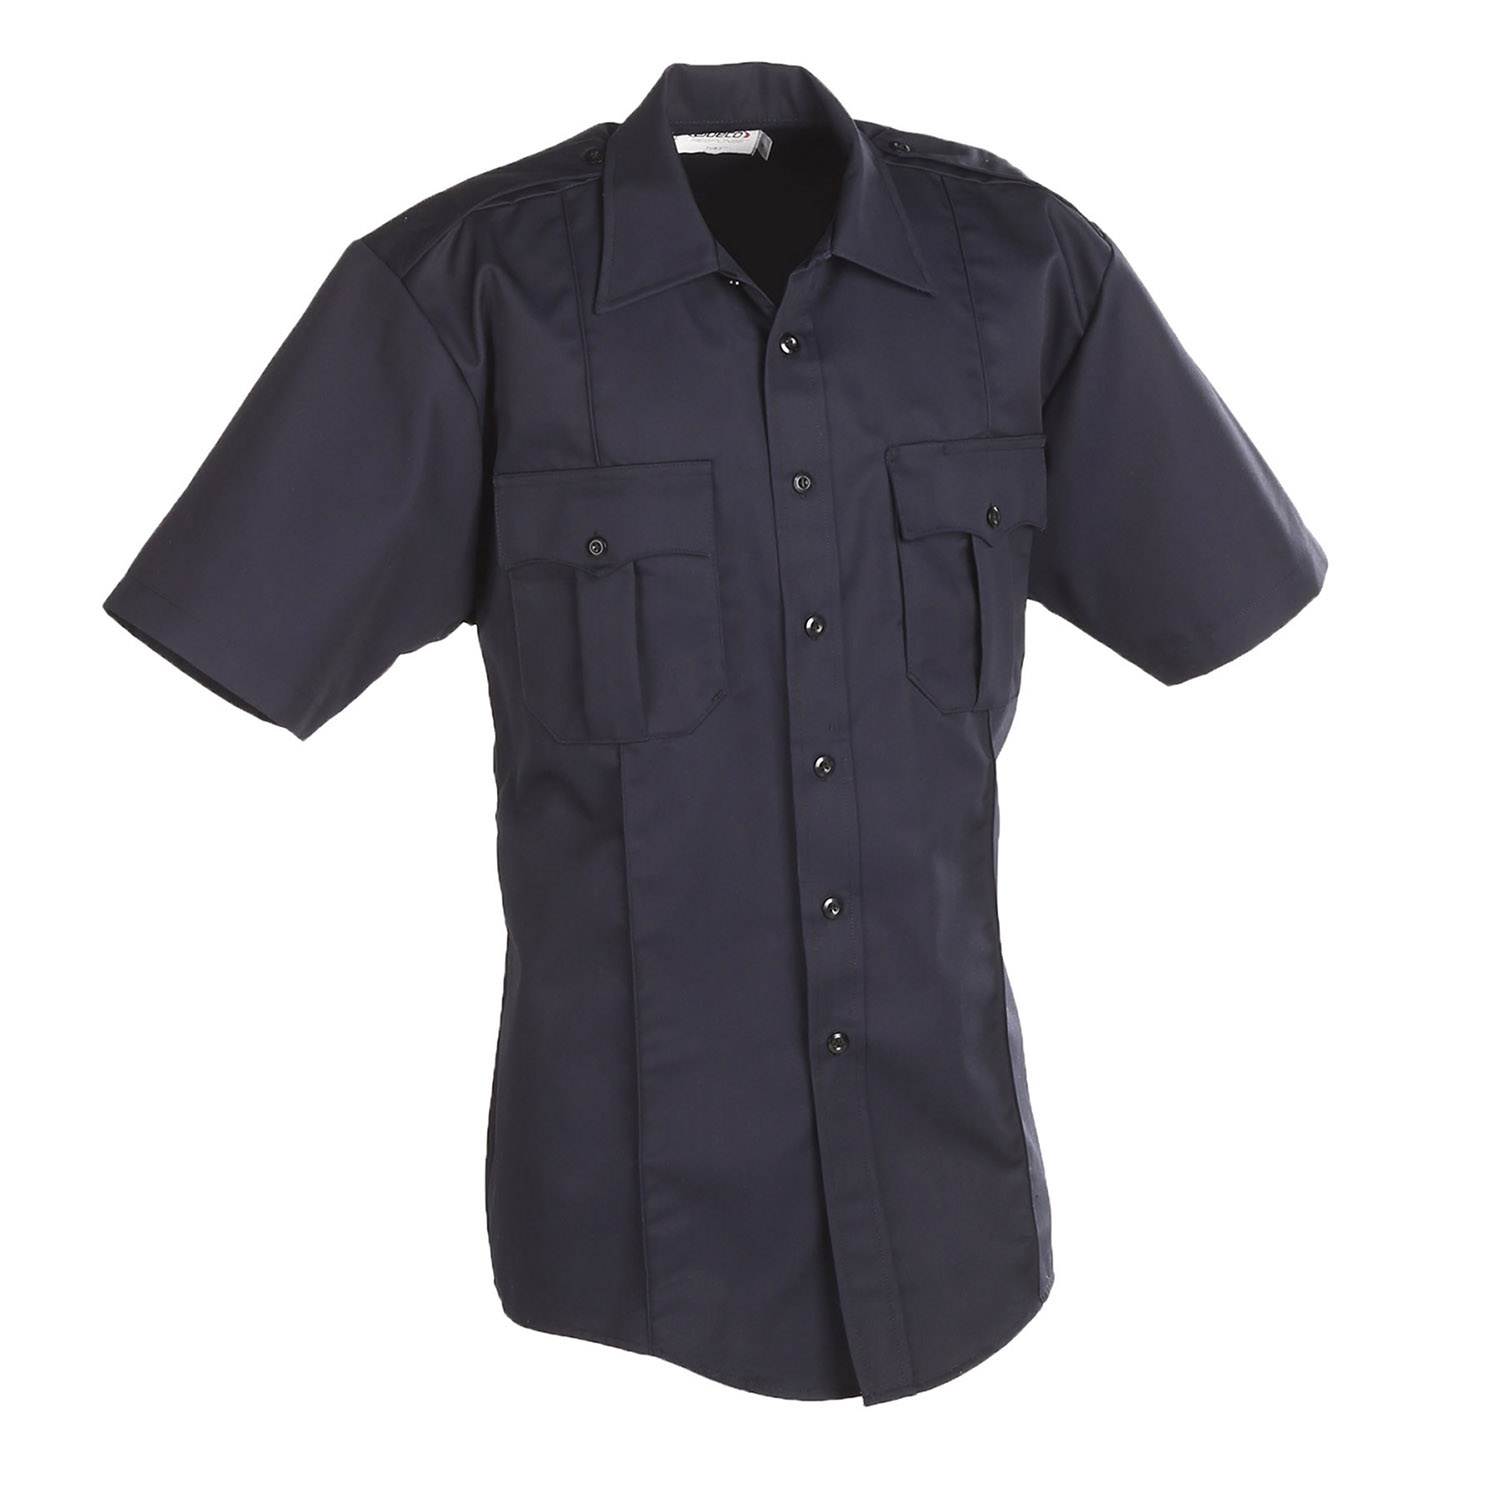 Elbeco TEK3 Short Sleeve Shirt